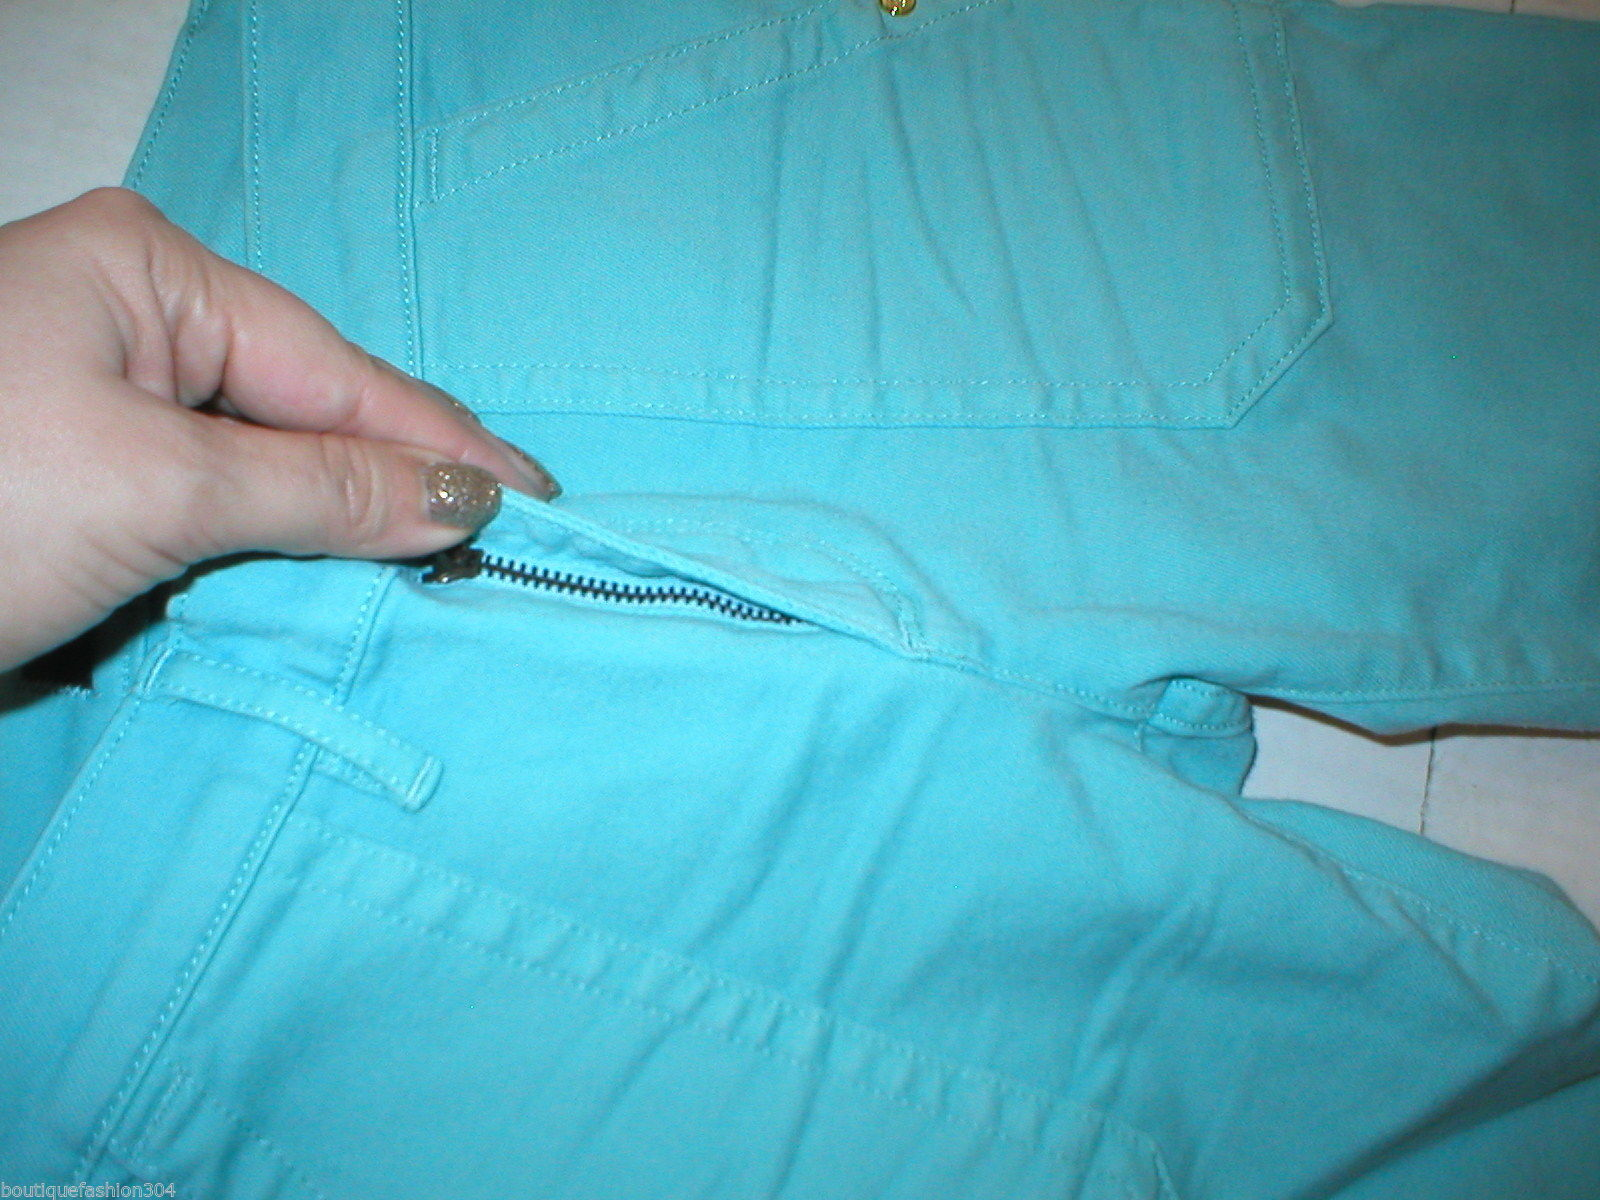 New Logo Crop Jeans Juicy Couture 25 Womens Snap Pockets Aqua Blue Teal Skinny image 5